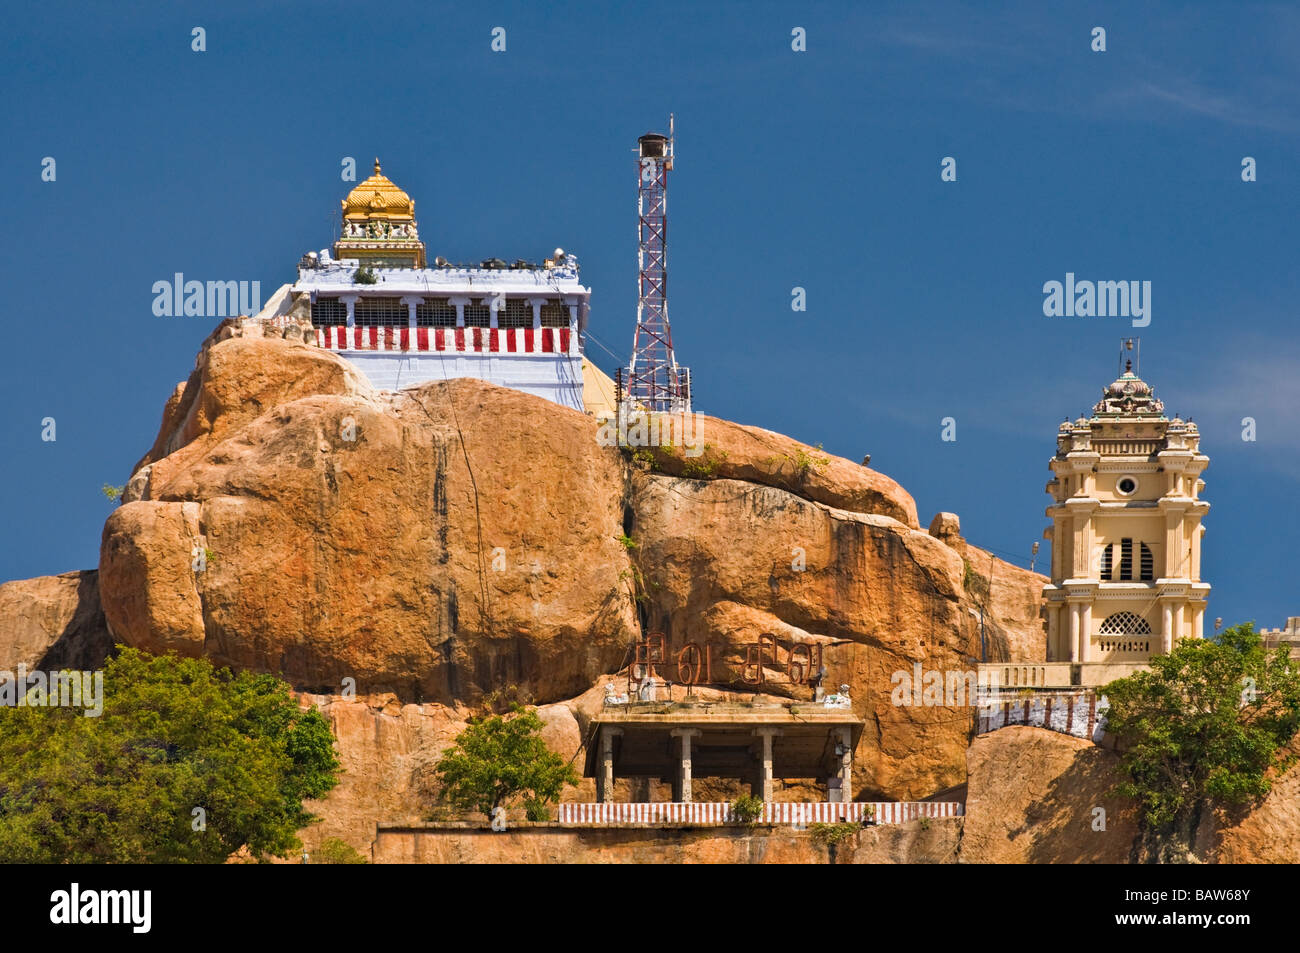 Rock Fort Temple Trichy Tamil Nadu India Stock Photo